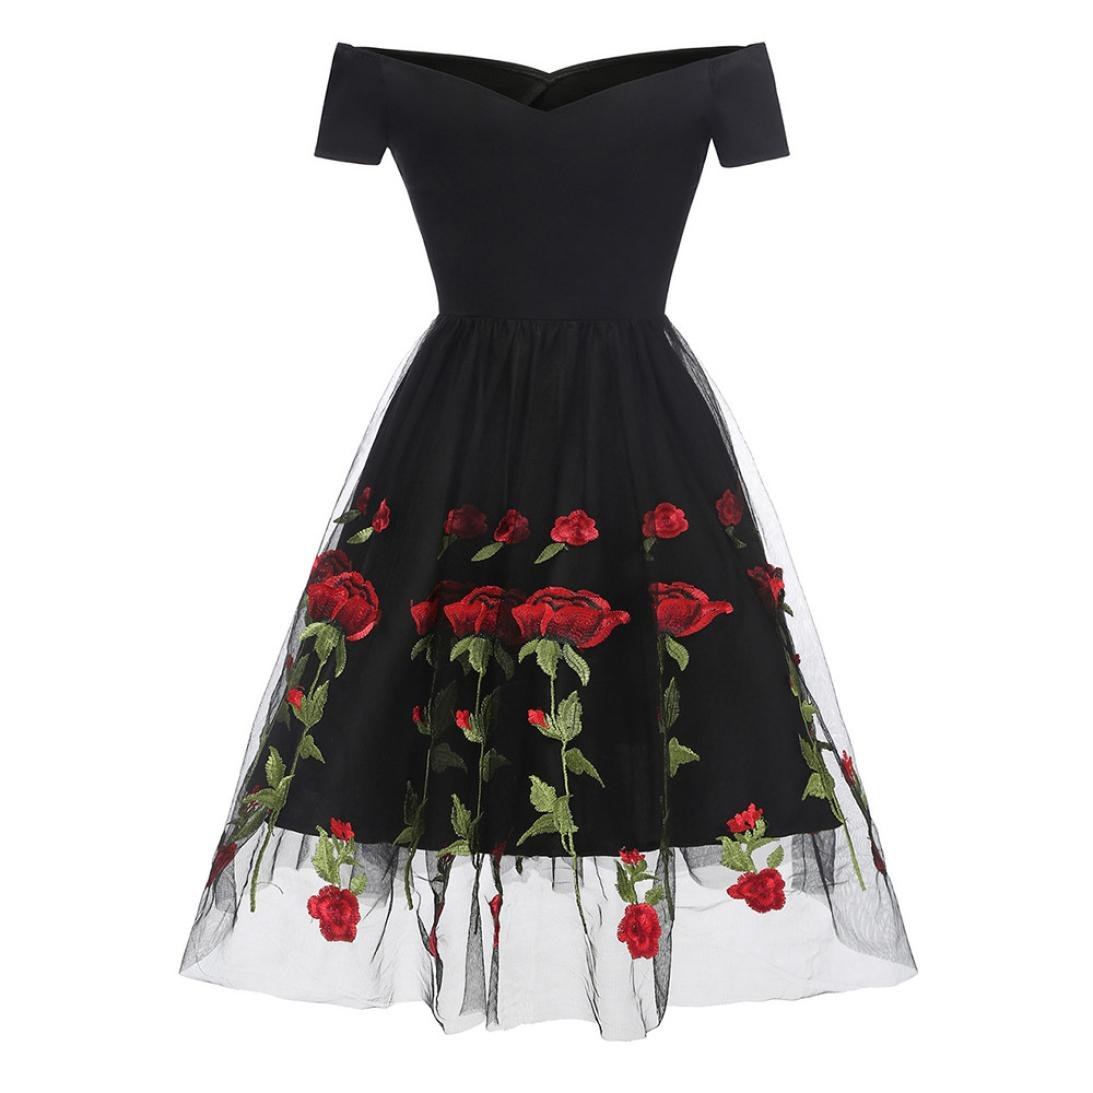 261a1b501f7d Fashion Embroidery Cocktail Dresses Women's Vintage Princess Dress Retro  Rose Floral Ruched Off Shoulder Party Dress at Amazon Women's Clothing  store: